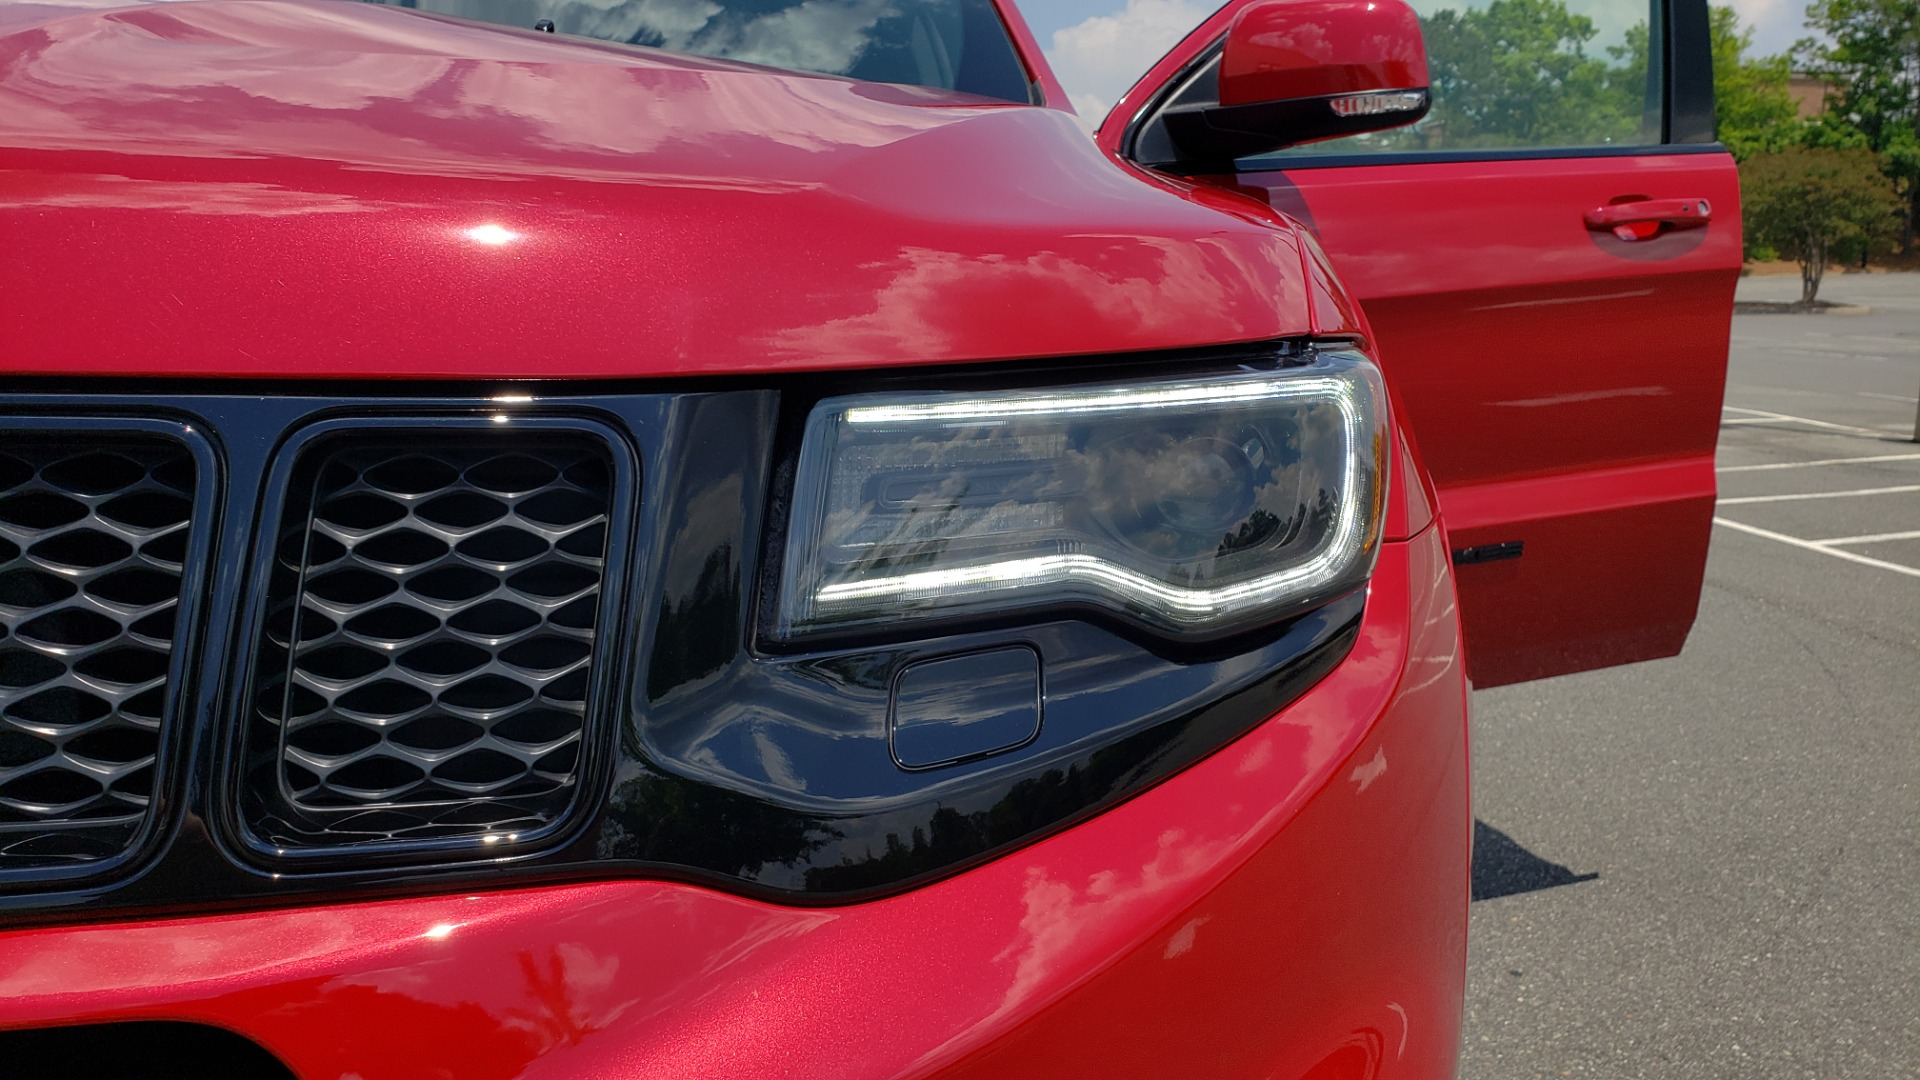 Used 2018 Jeep GRAND CHEROKEE SRT 4X4 / 6.4L HEMI (475HP) / NAV / SUNROOF / H/K SND / REARVIEW for sale Sold at Formula Imports in Charlotte NC 28227 32